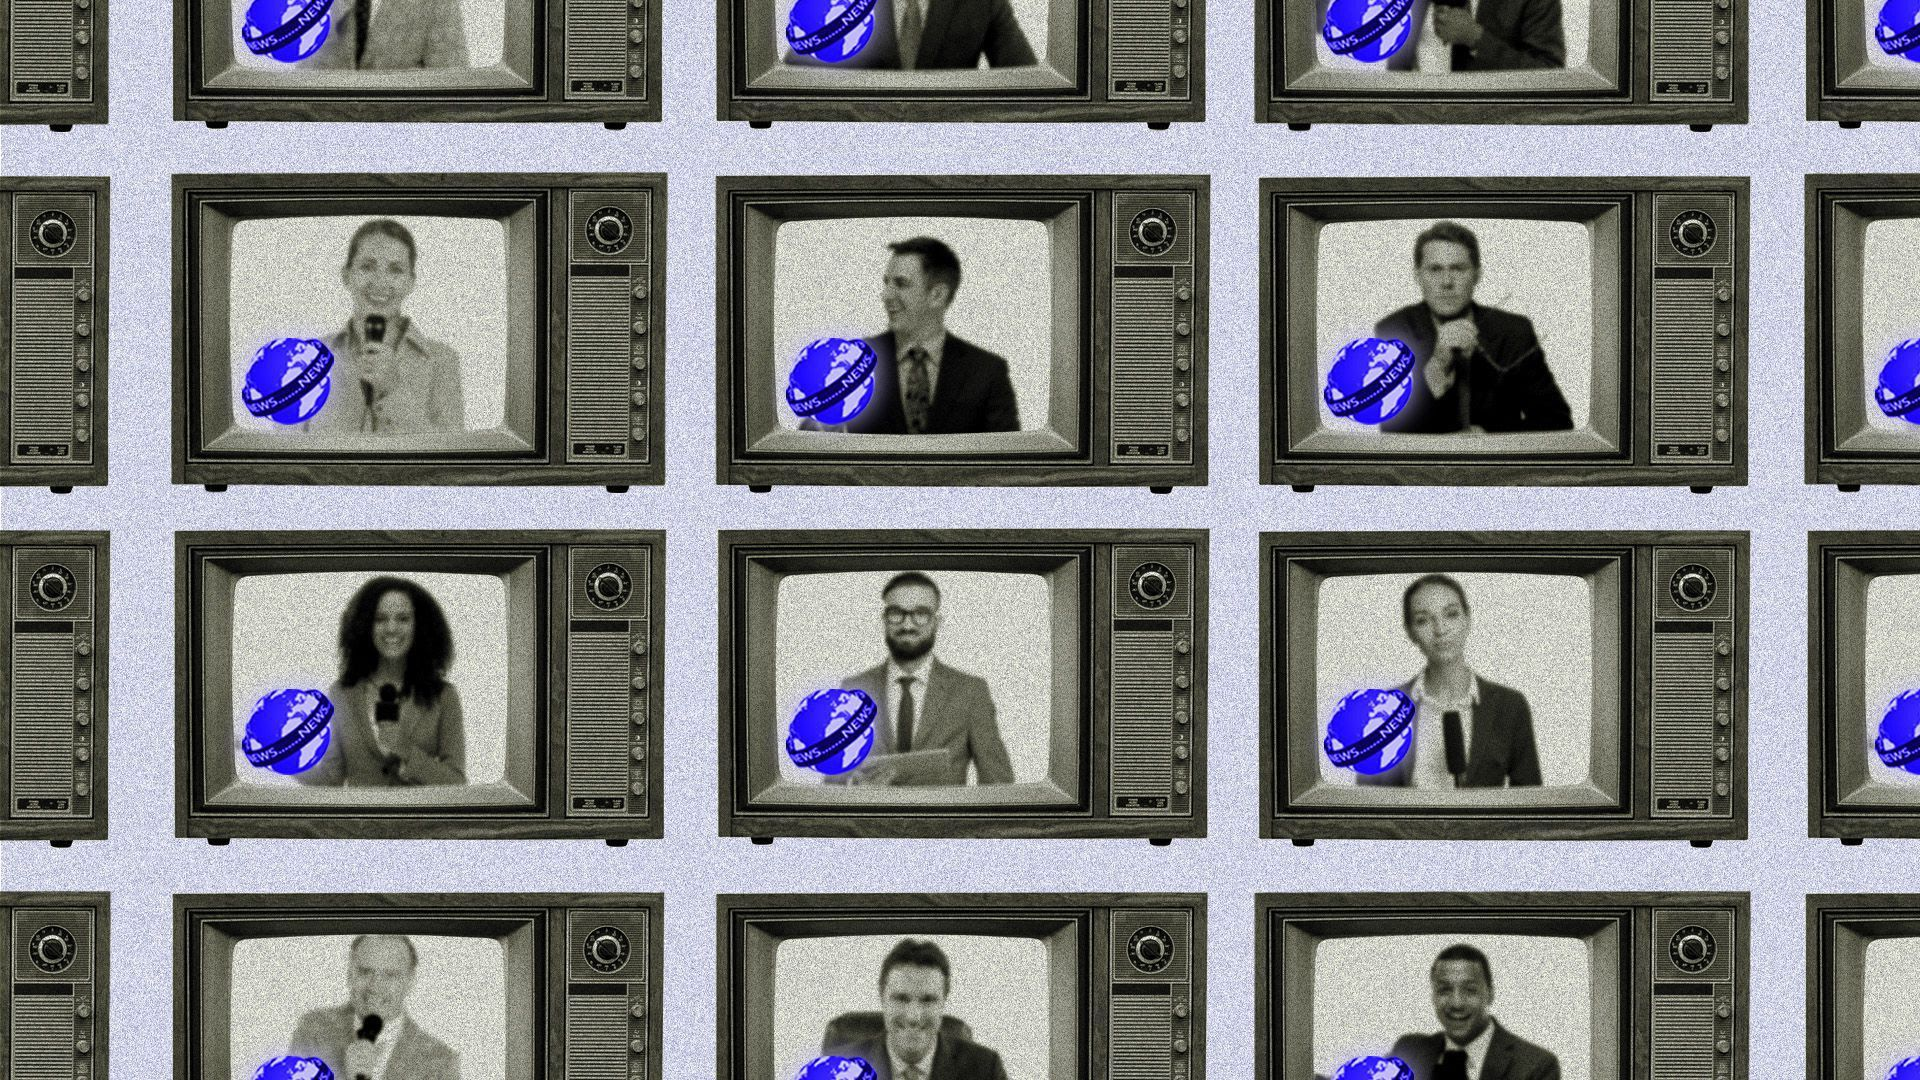 An illustration of a wall of television screens